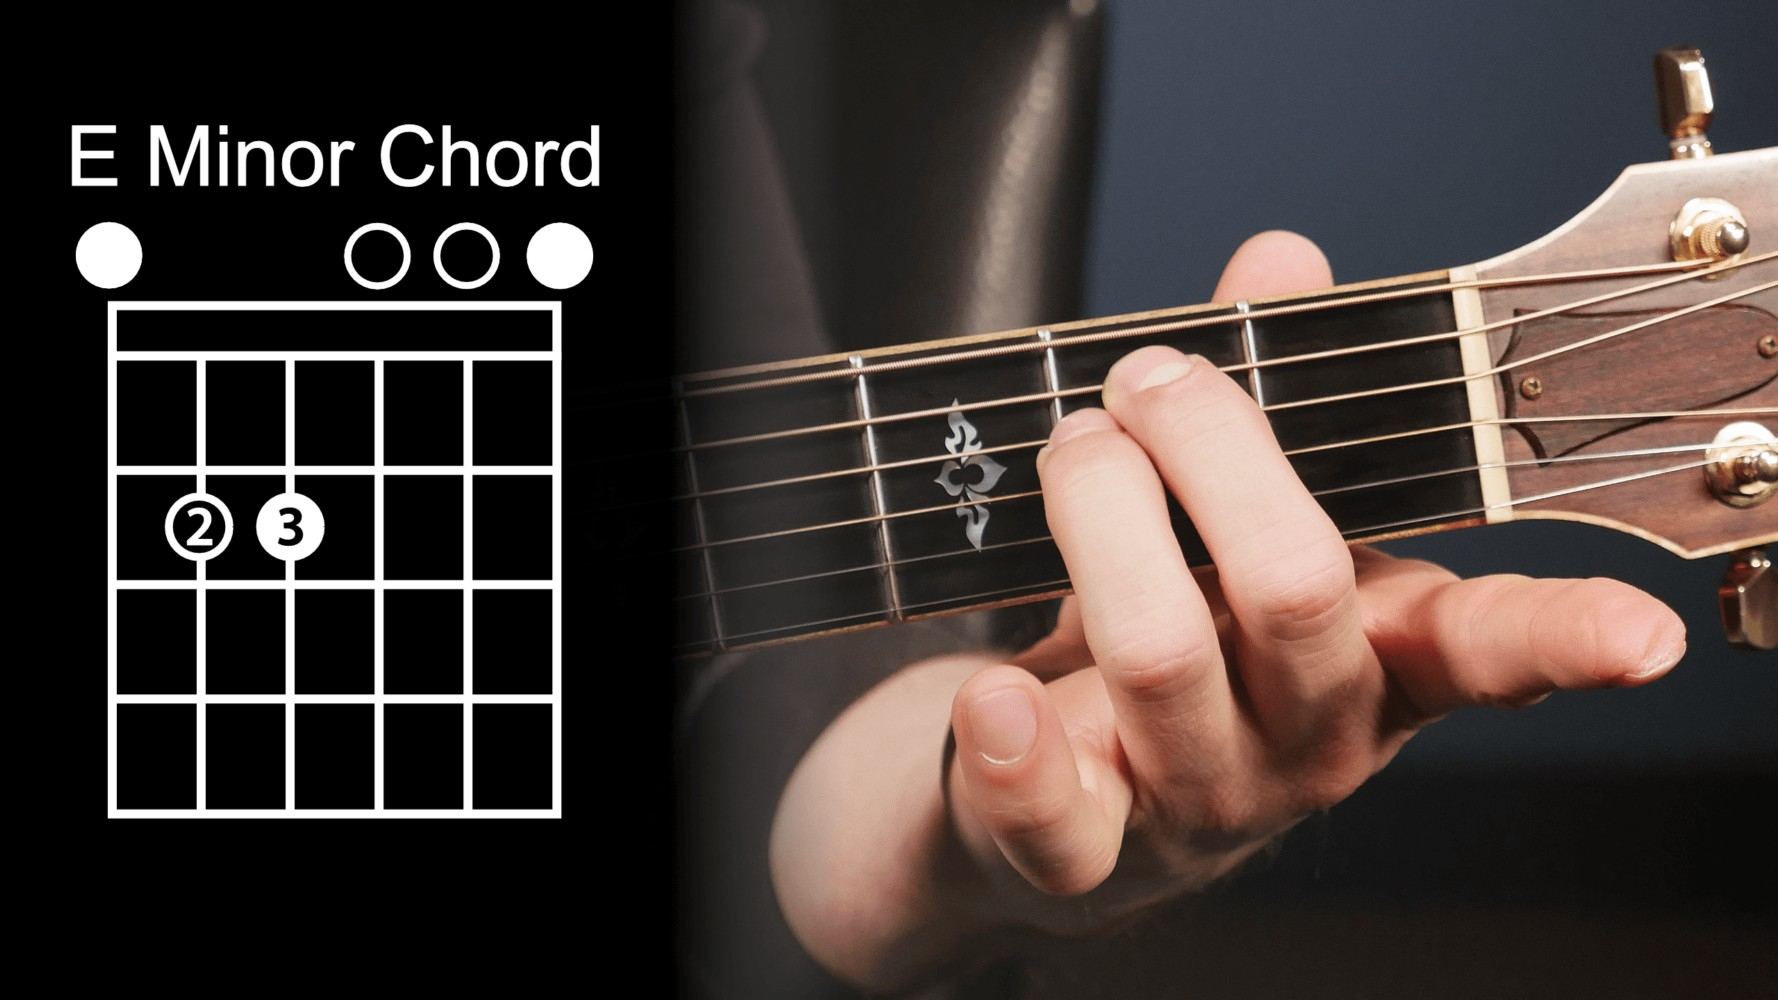 E Minor Chord 8 Beginner Guitar Chords To Learn And Play For Your Kids Today